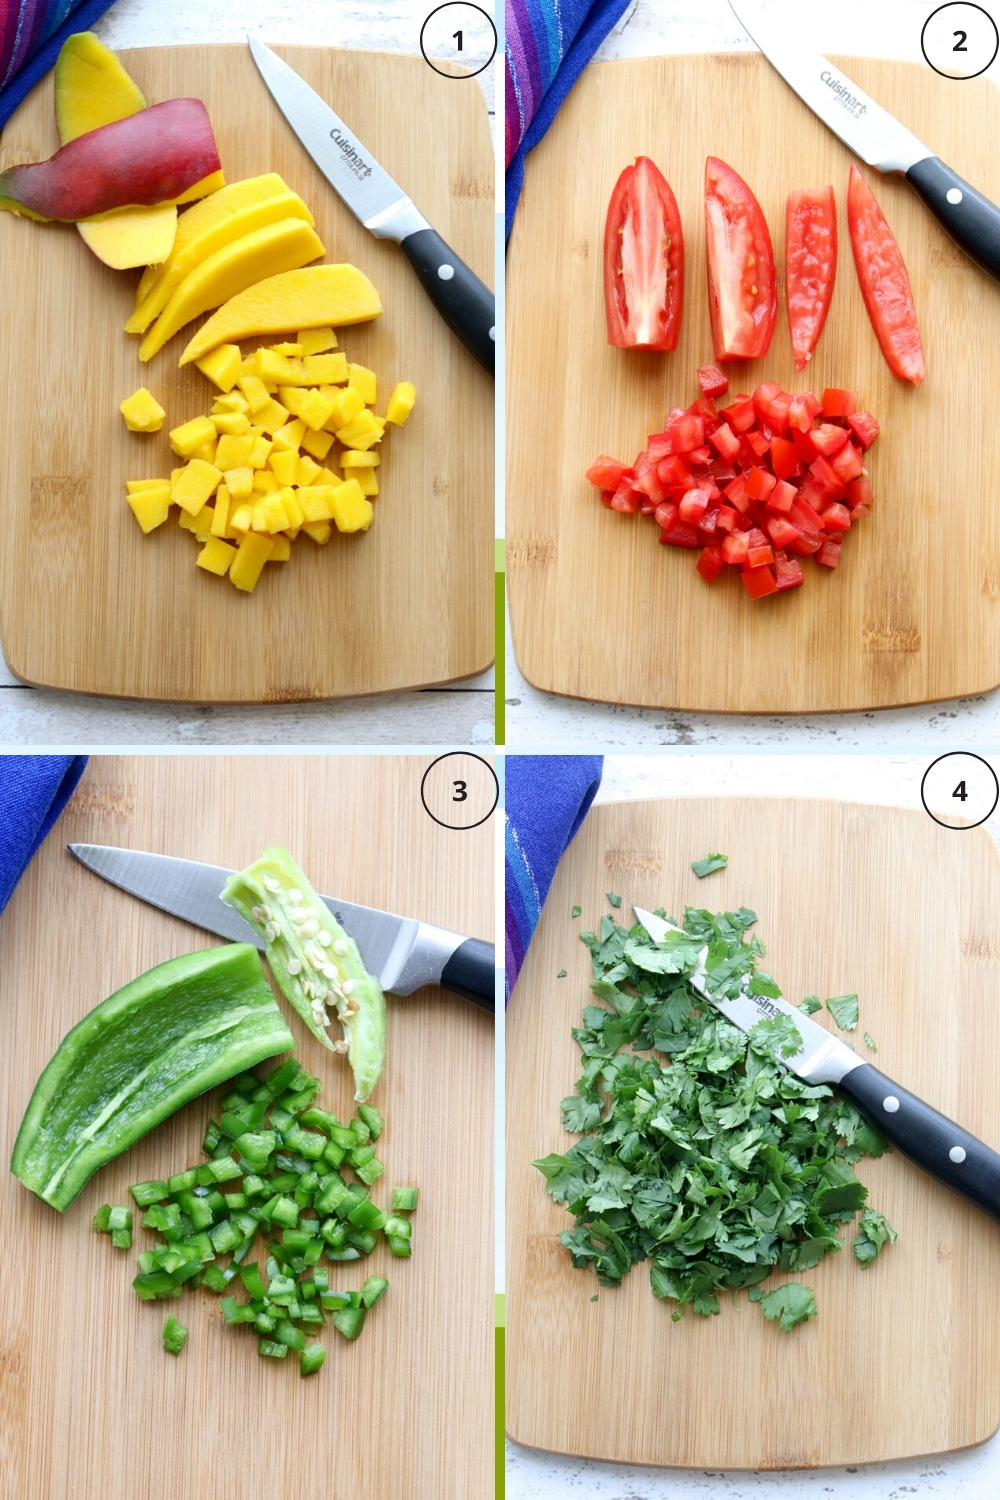 Four photos showing how to chop mangos, tomatoes, jalapeños, and cilantro